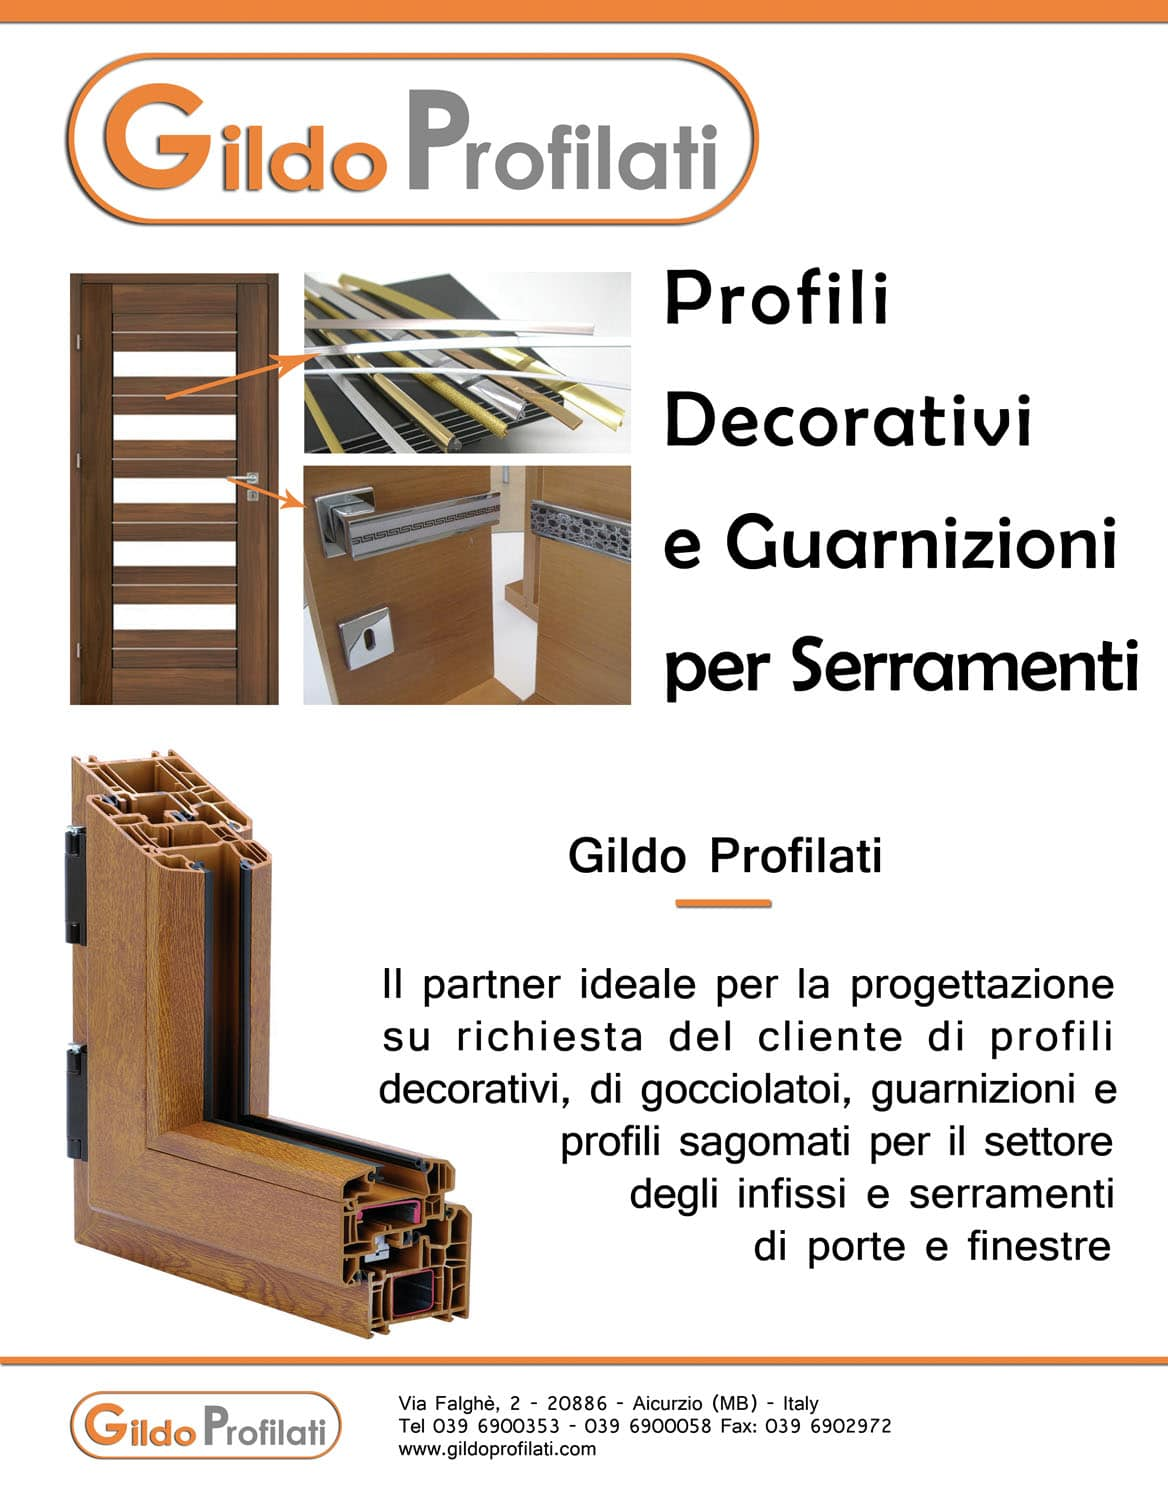 Article on Legno&Legno - Mobile e Arredamento - Furniture e Furnishings